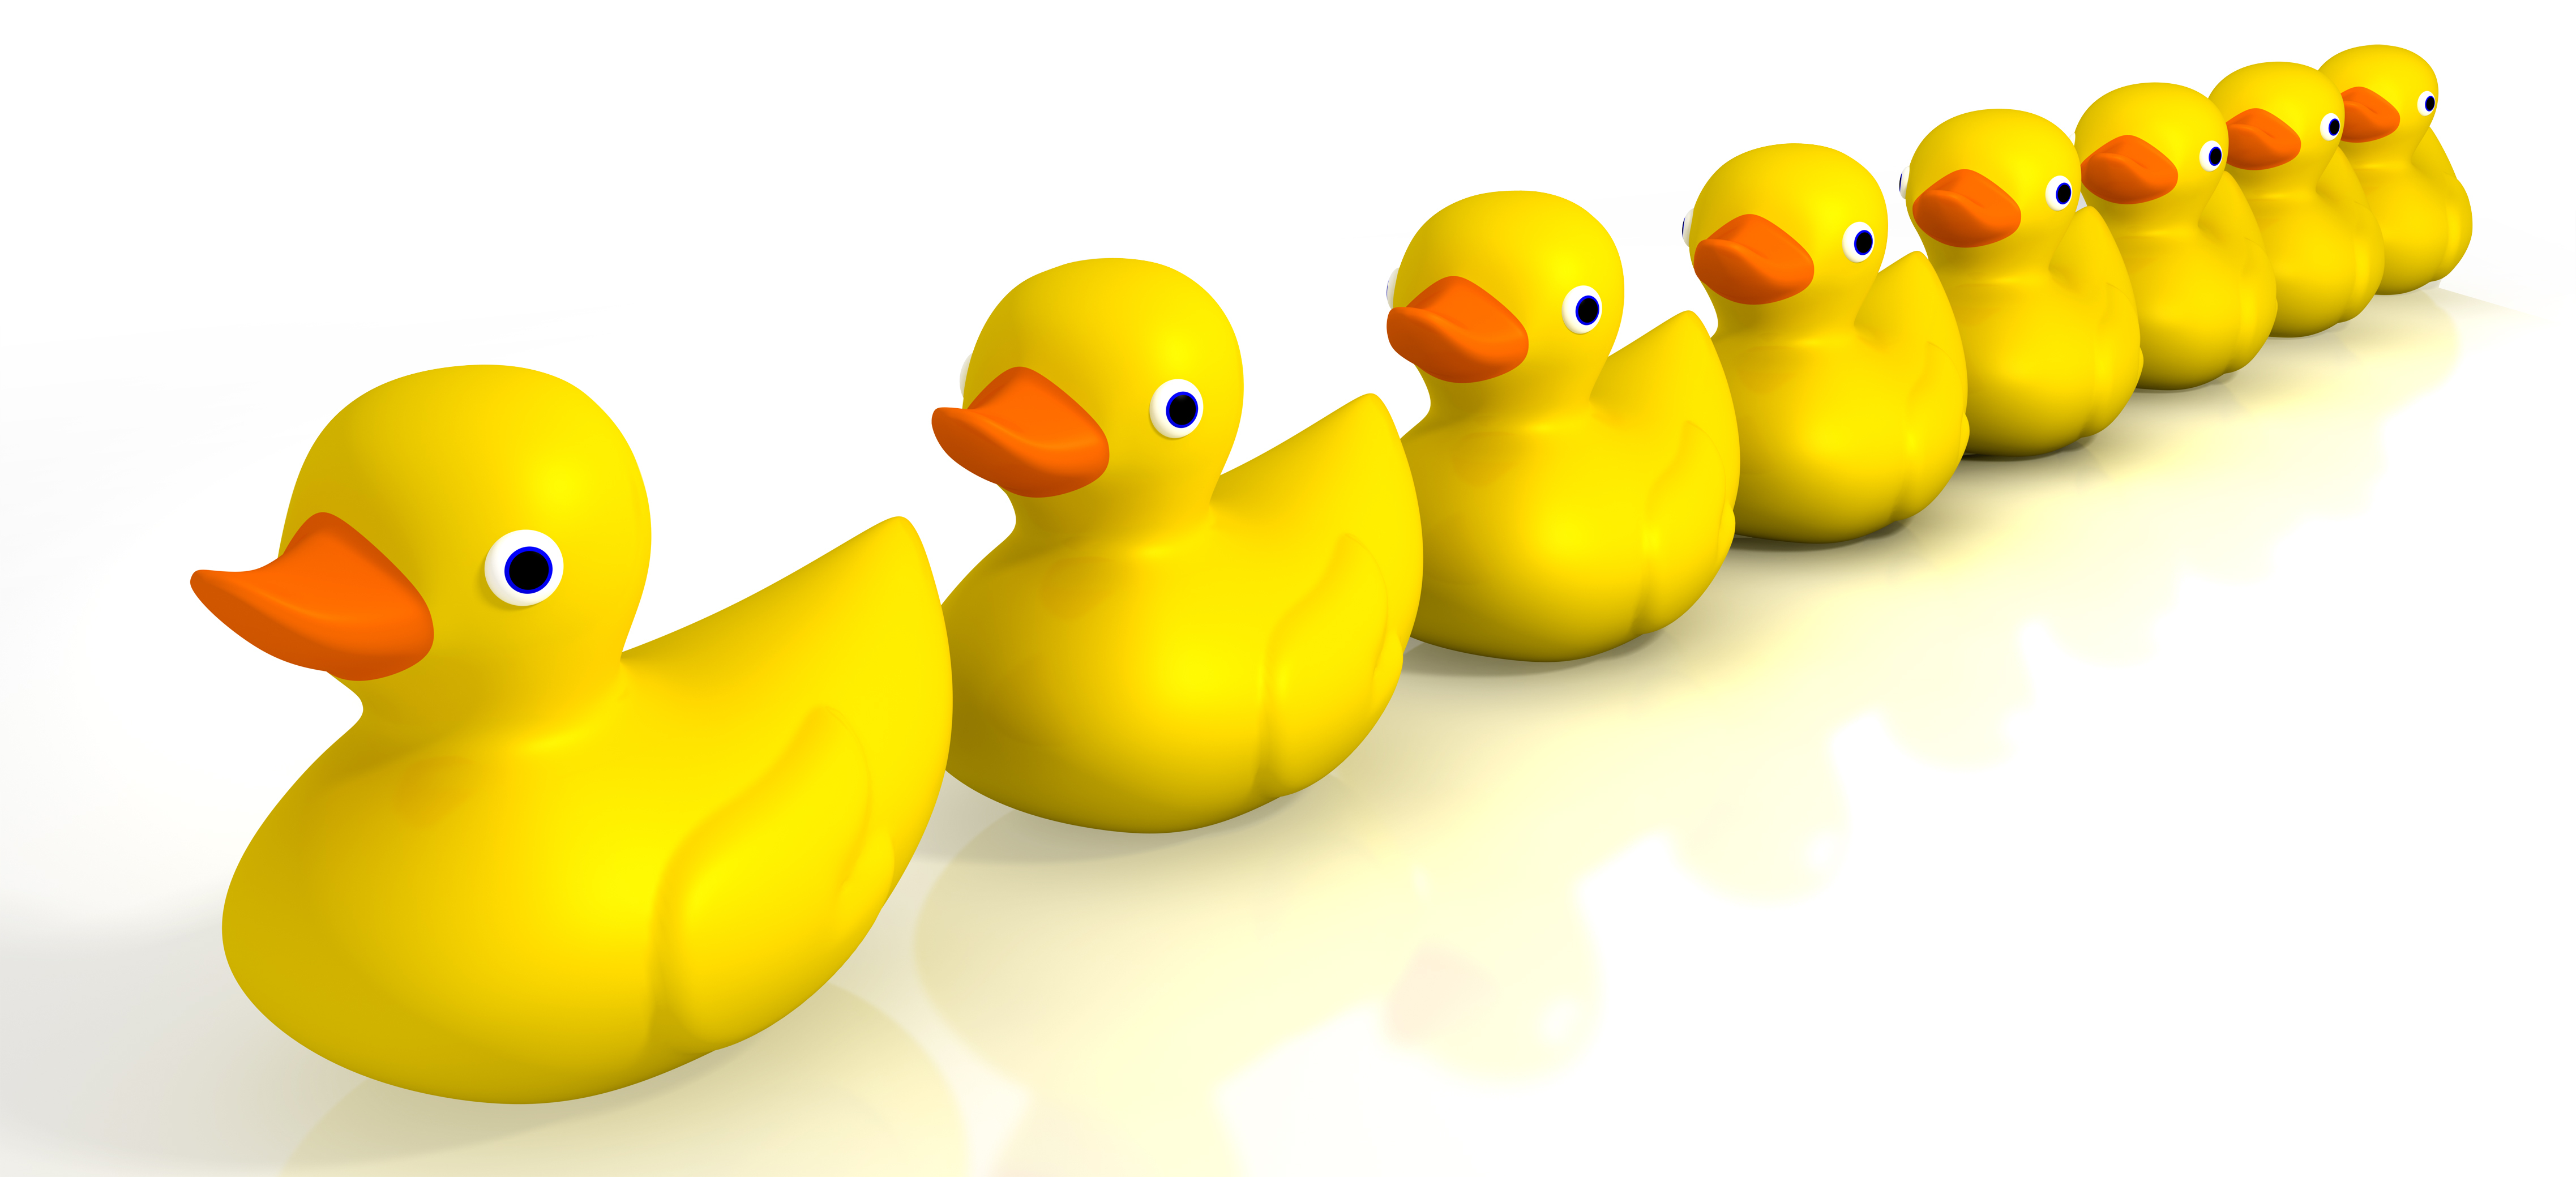 Your Toy Rubber Ducks In A Row